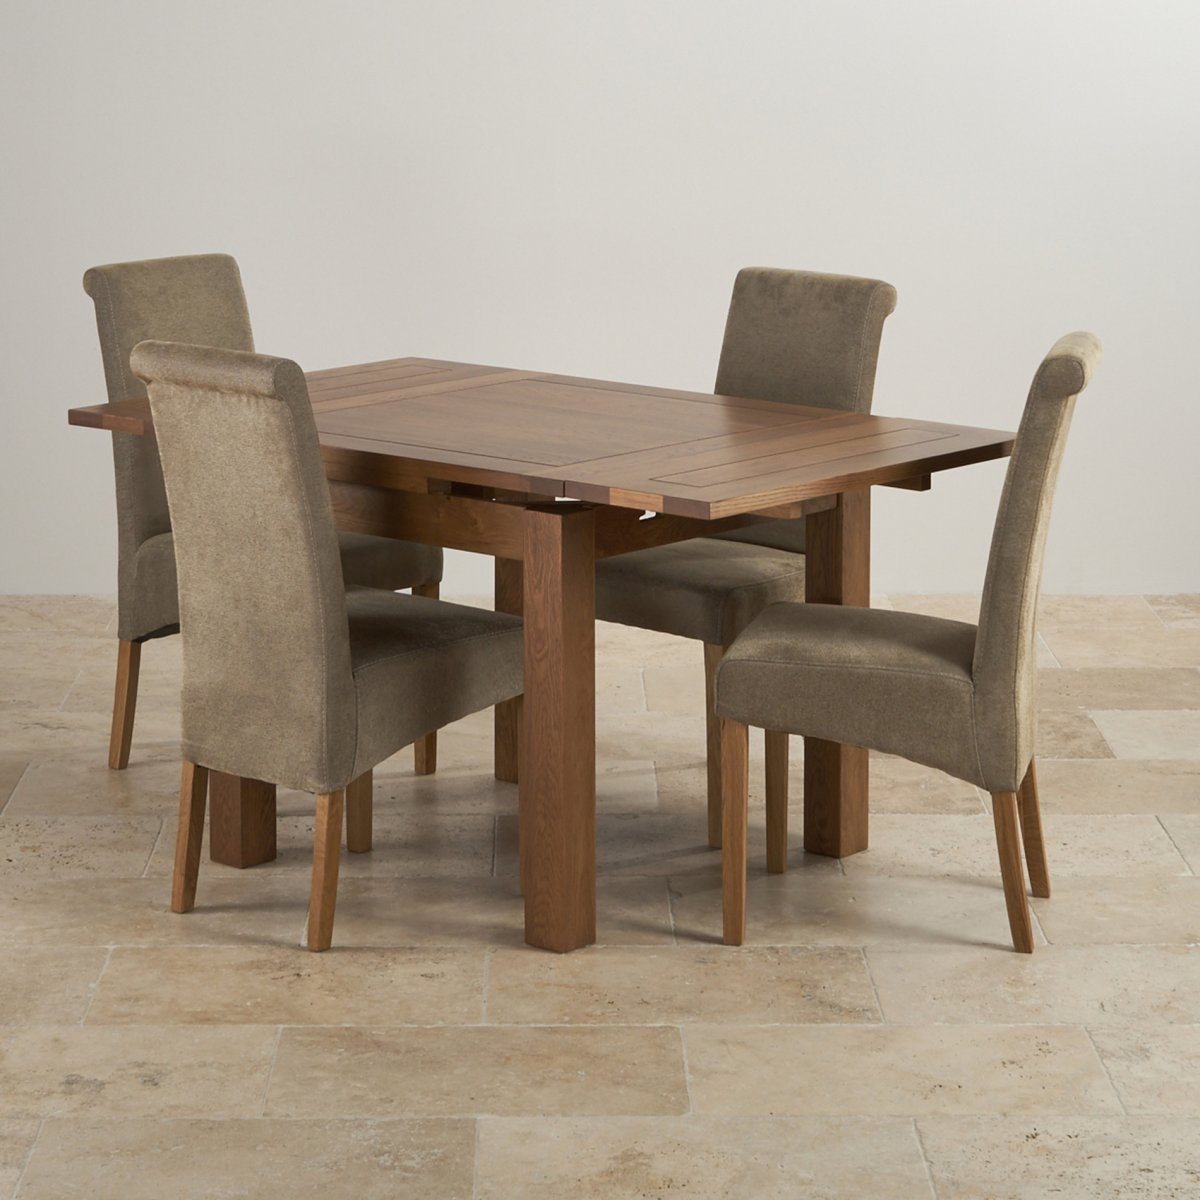 Extendable Dining Set In Rustic Brushed Solid Oak: Rustic Dining Set In Real Oak: Extending Table + 4 Sage Chairs